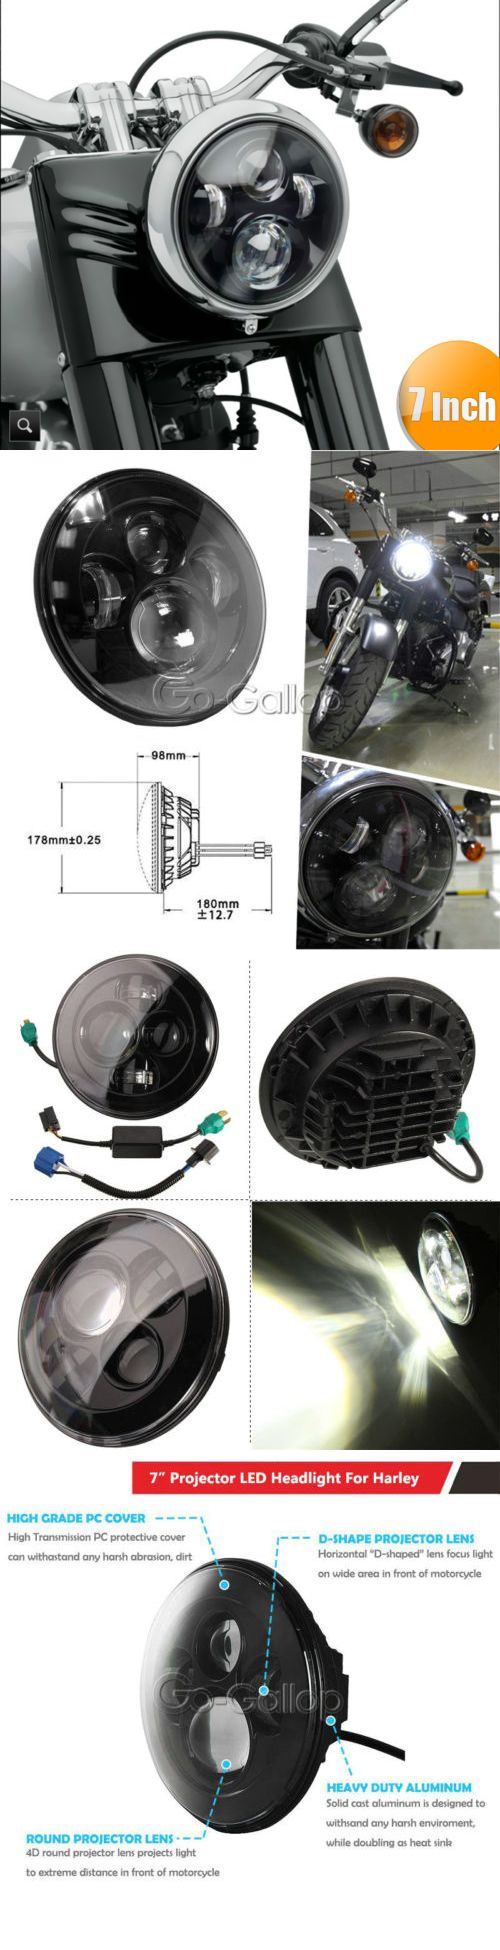 motorcycle parts: 7 Led Projector Daymaker Black Headlight Fit Harley Street Glide Softail Flhx -> BUY IT NOW ONLY: $44.95 on eBay!